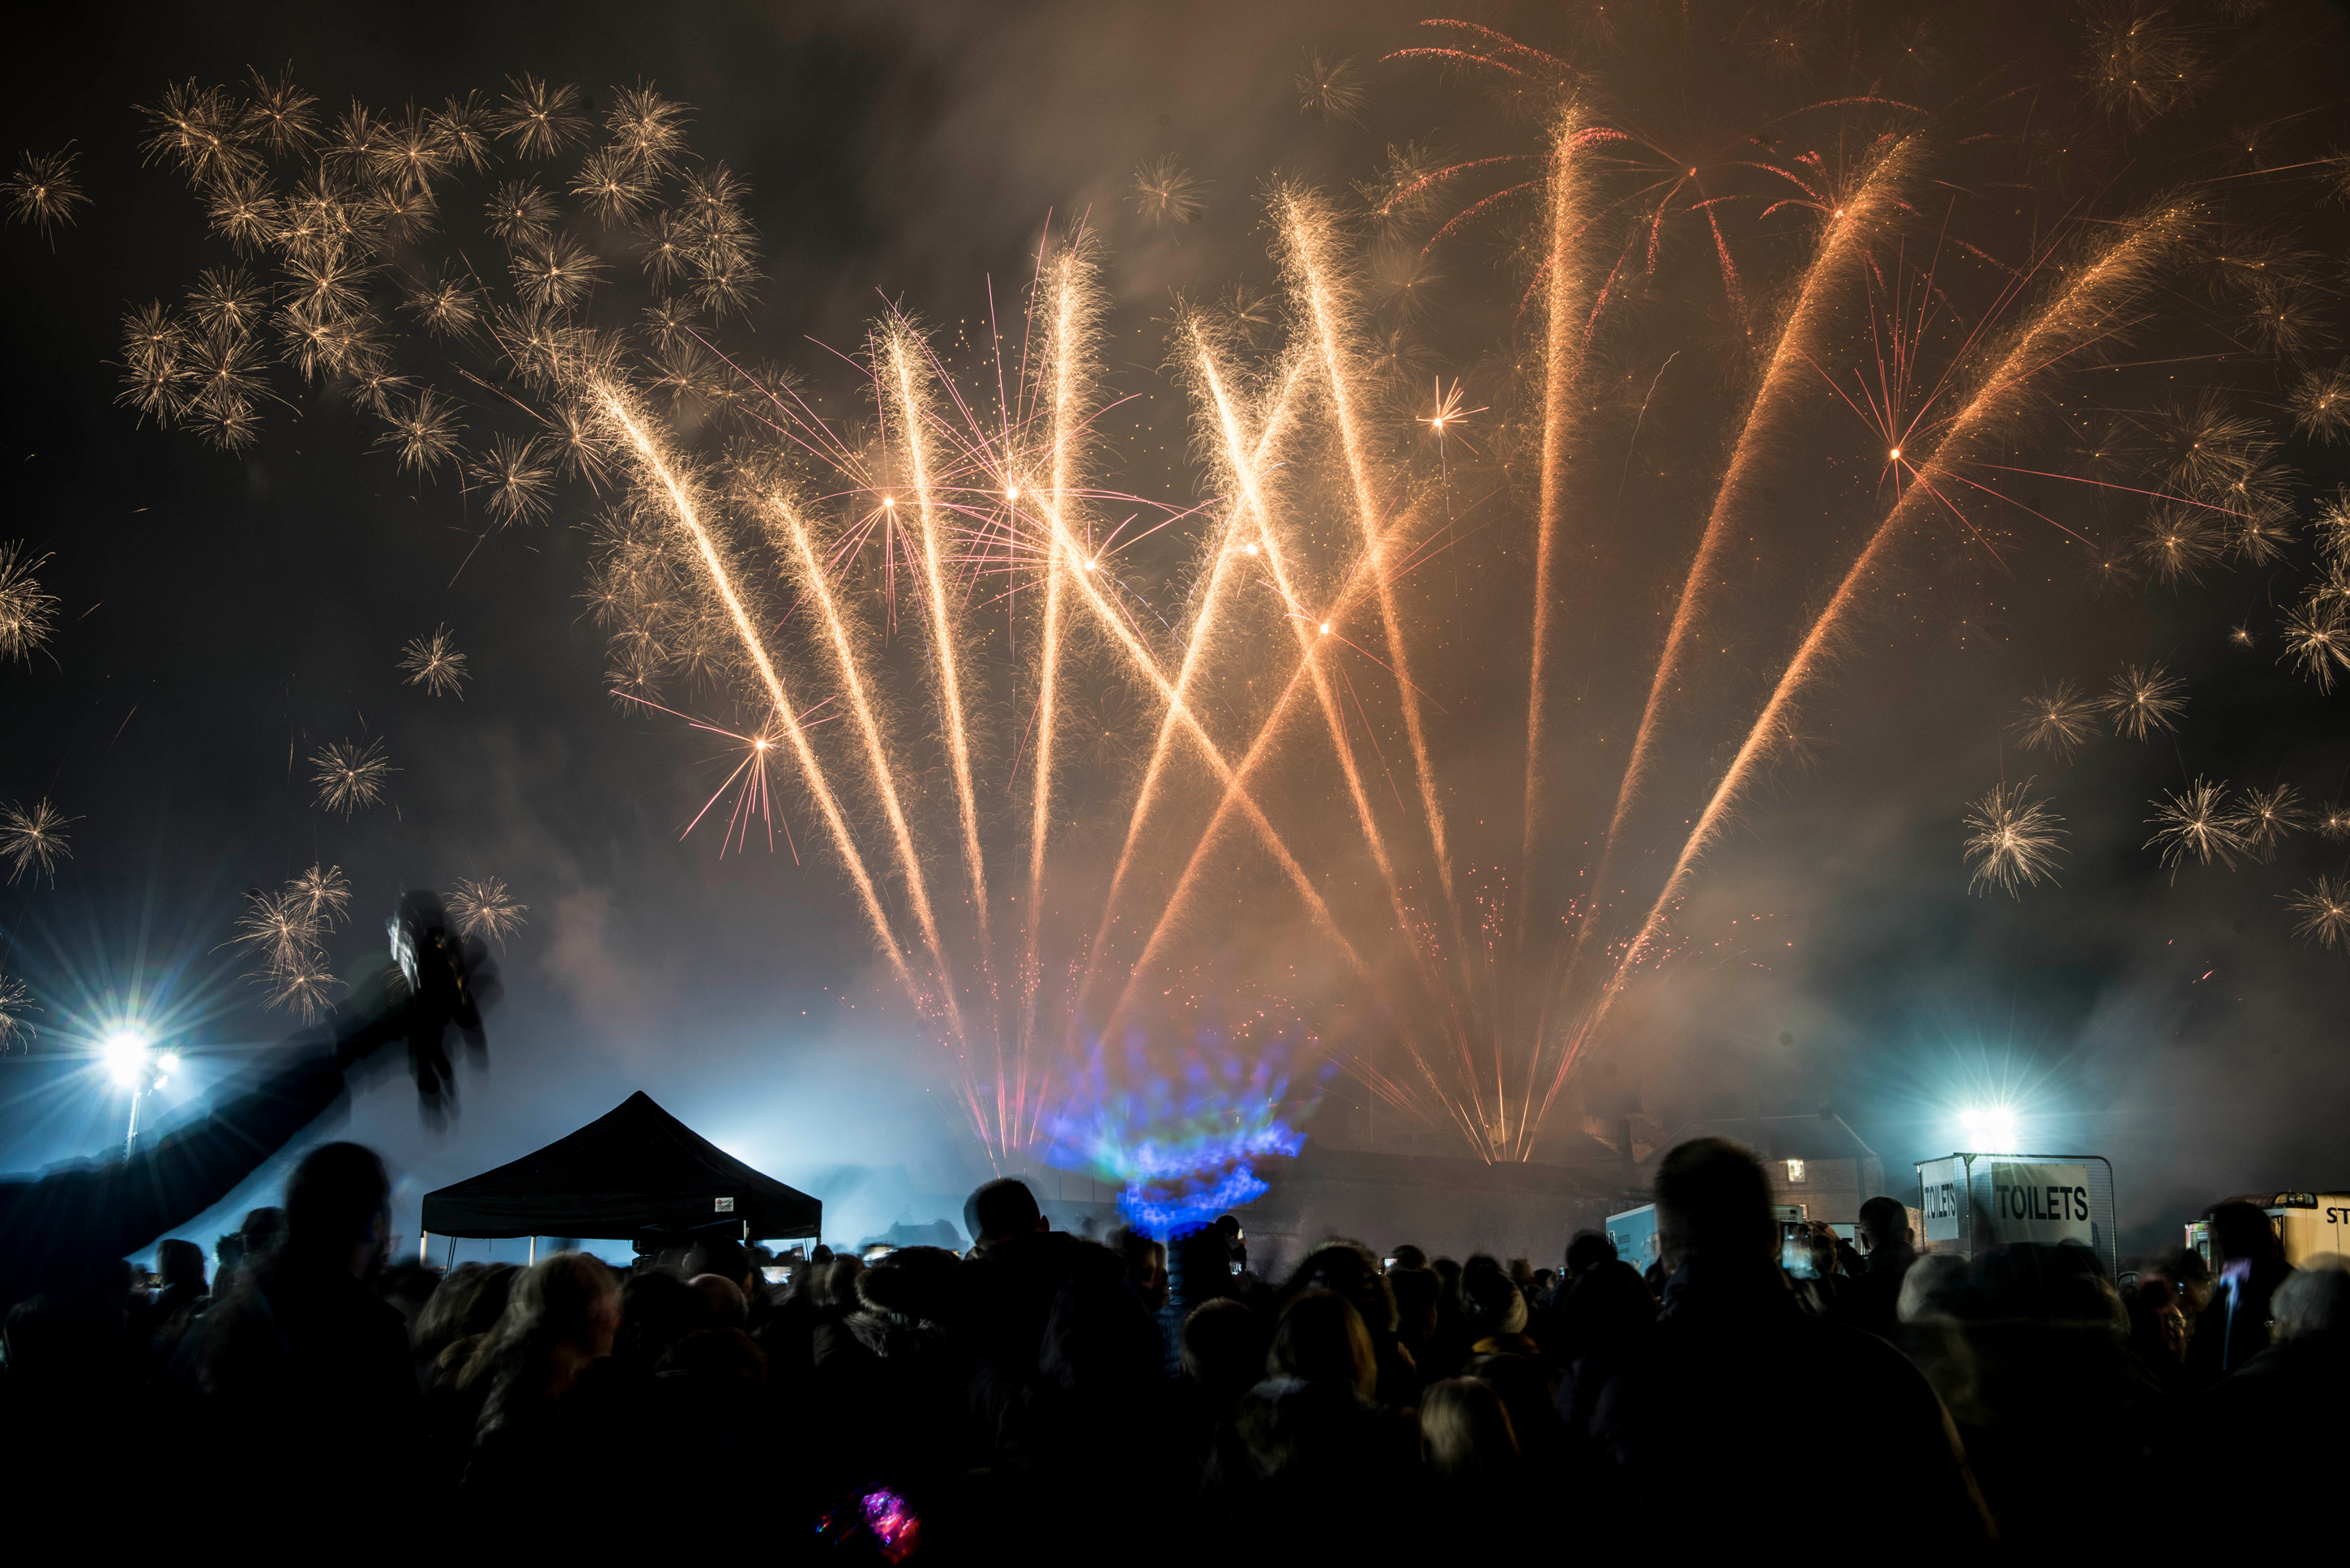 Fireworks at Stirling's Hogmanay 2019